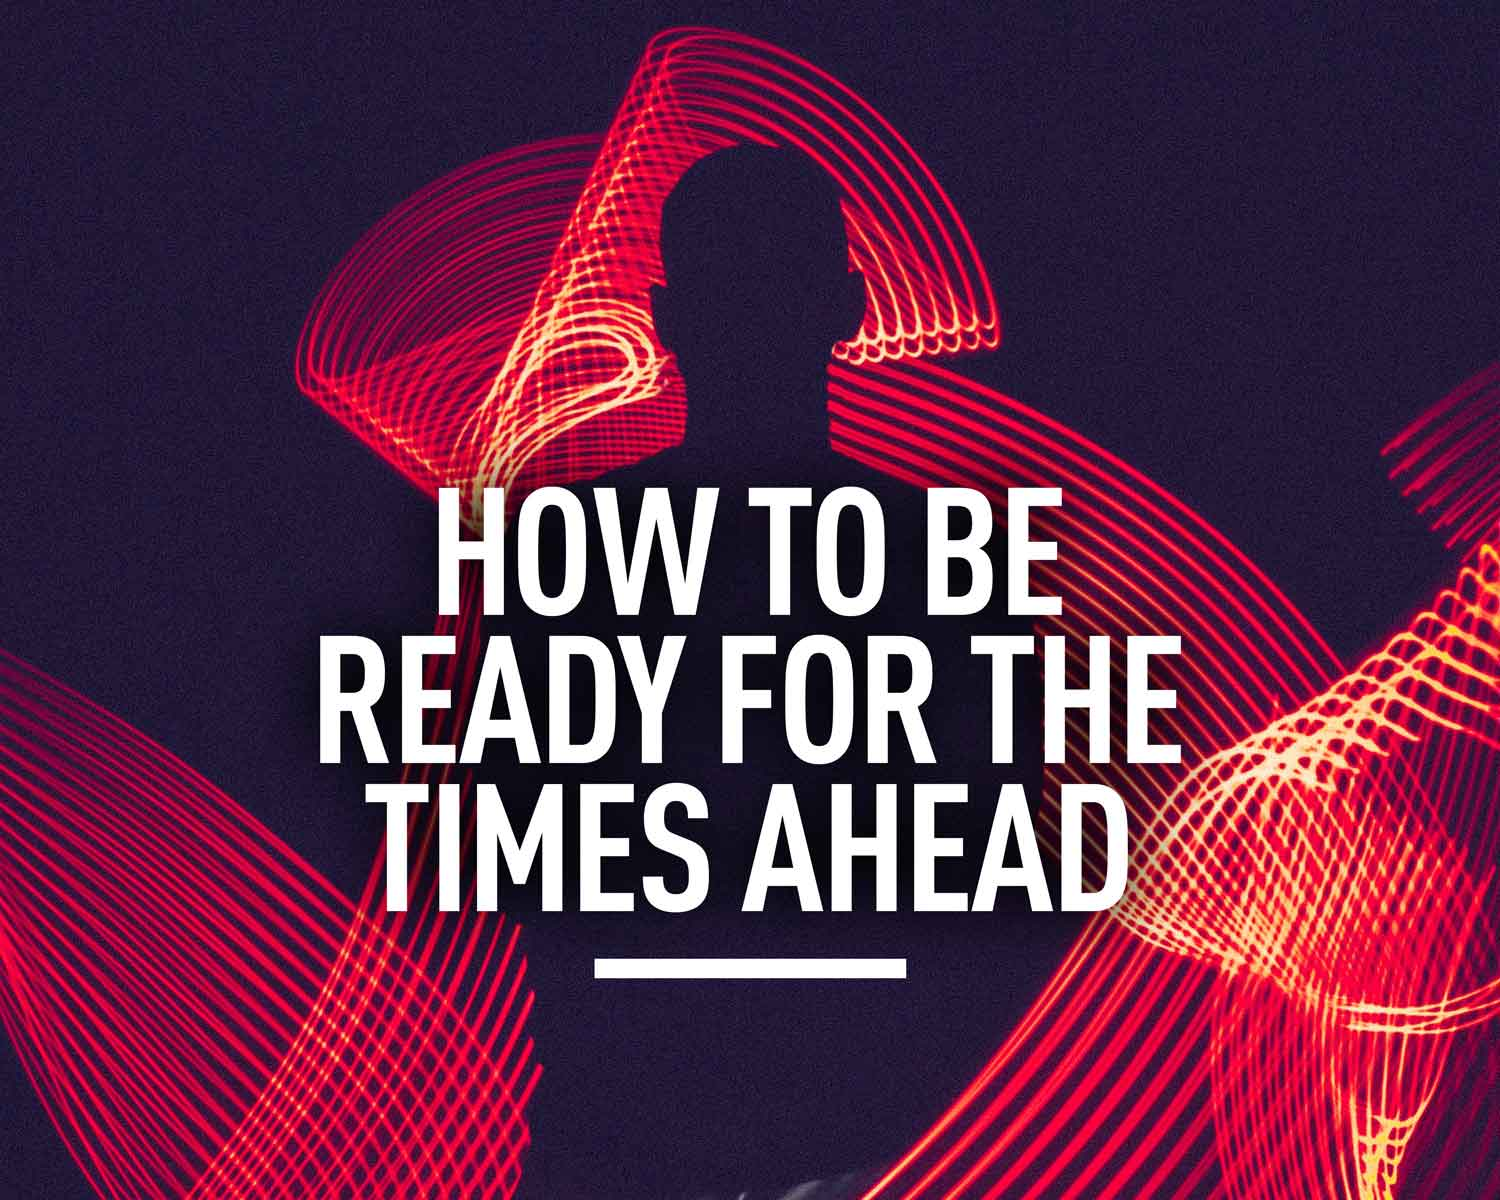 How to be Ready for the Times Ahead